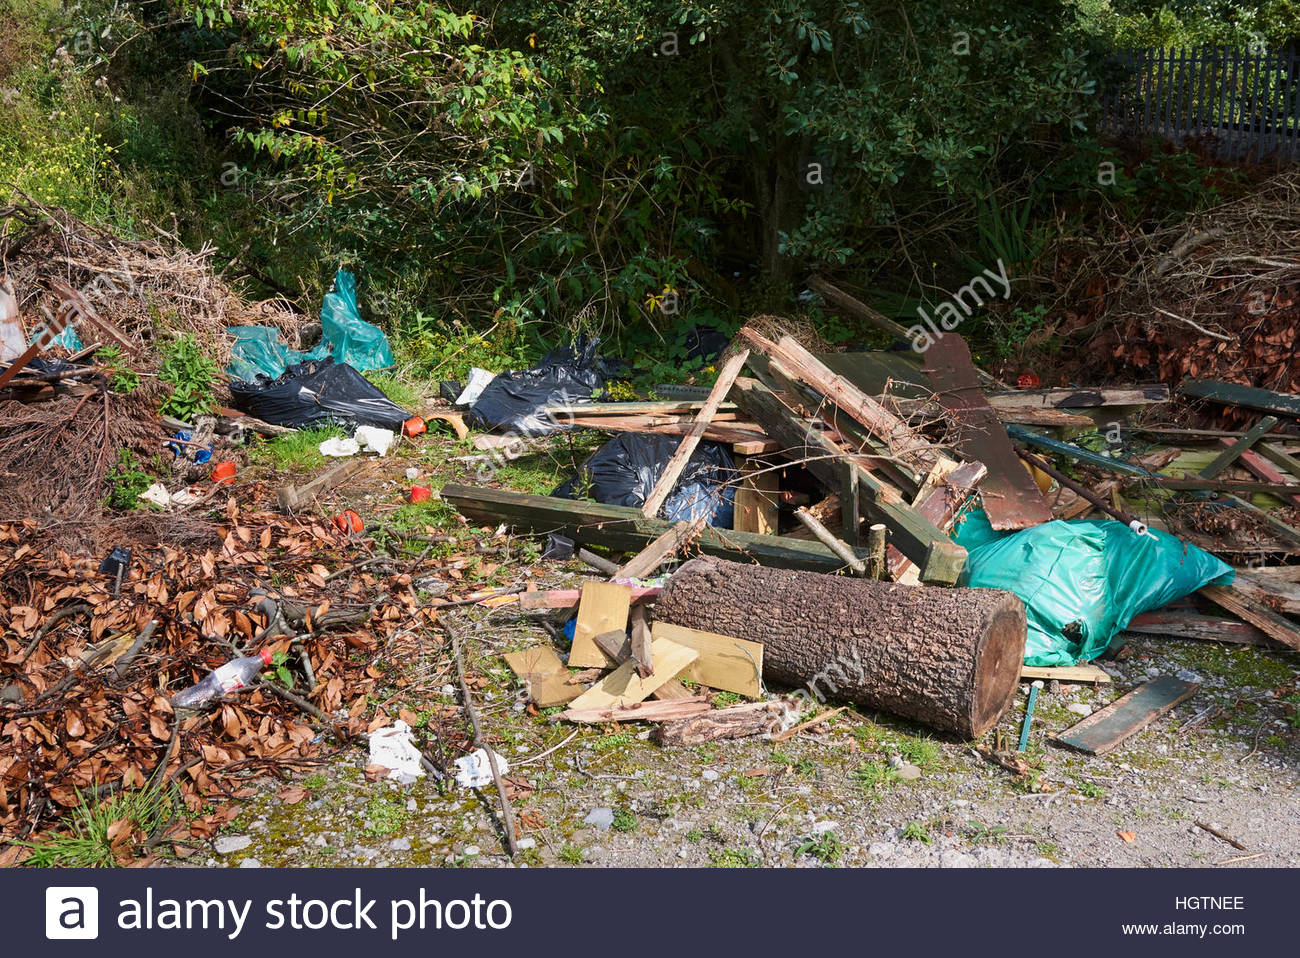 A piled of rubbish flytipped on waste ground in the countryside - Stock Image